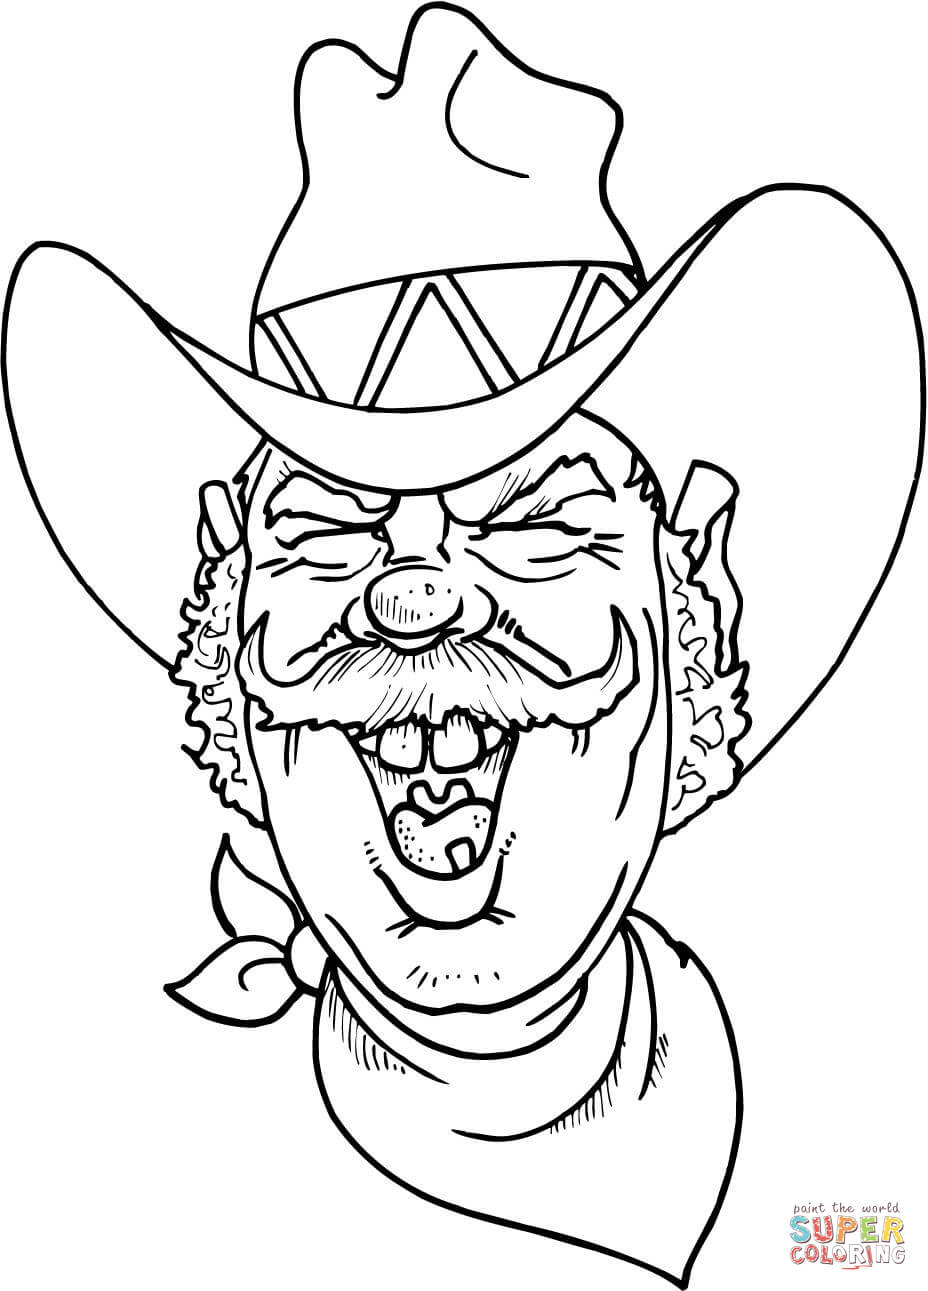 928x1291 Cowboy Laughing Coloring Page Free Printable Coloring Pages